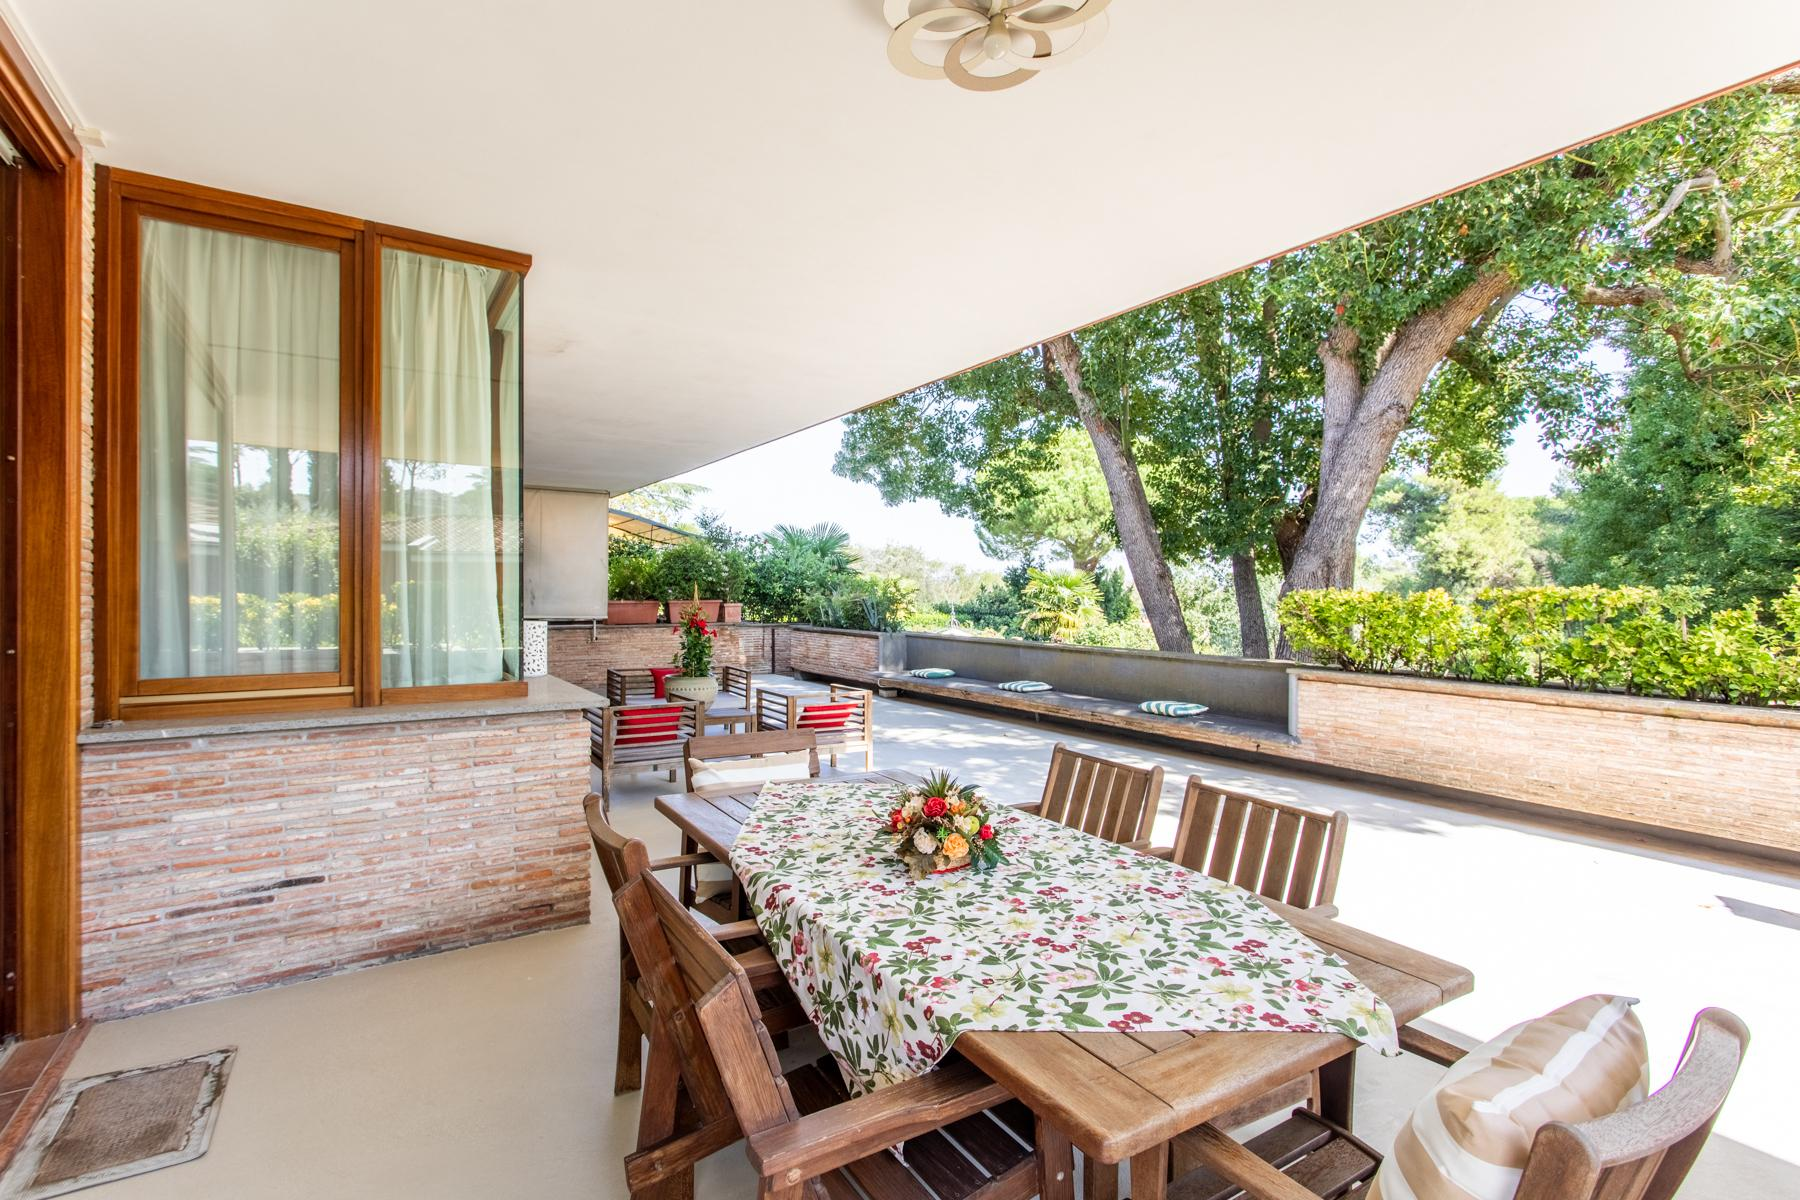 Bright property surrounded by greenery - 8